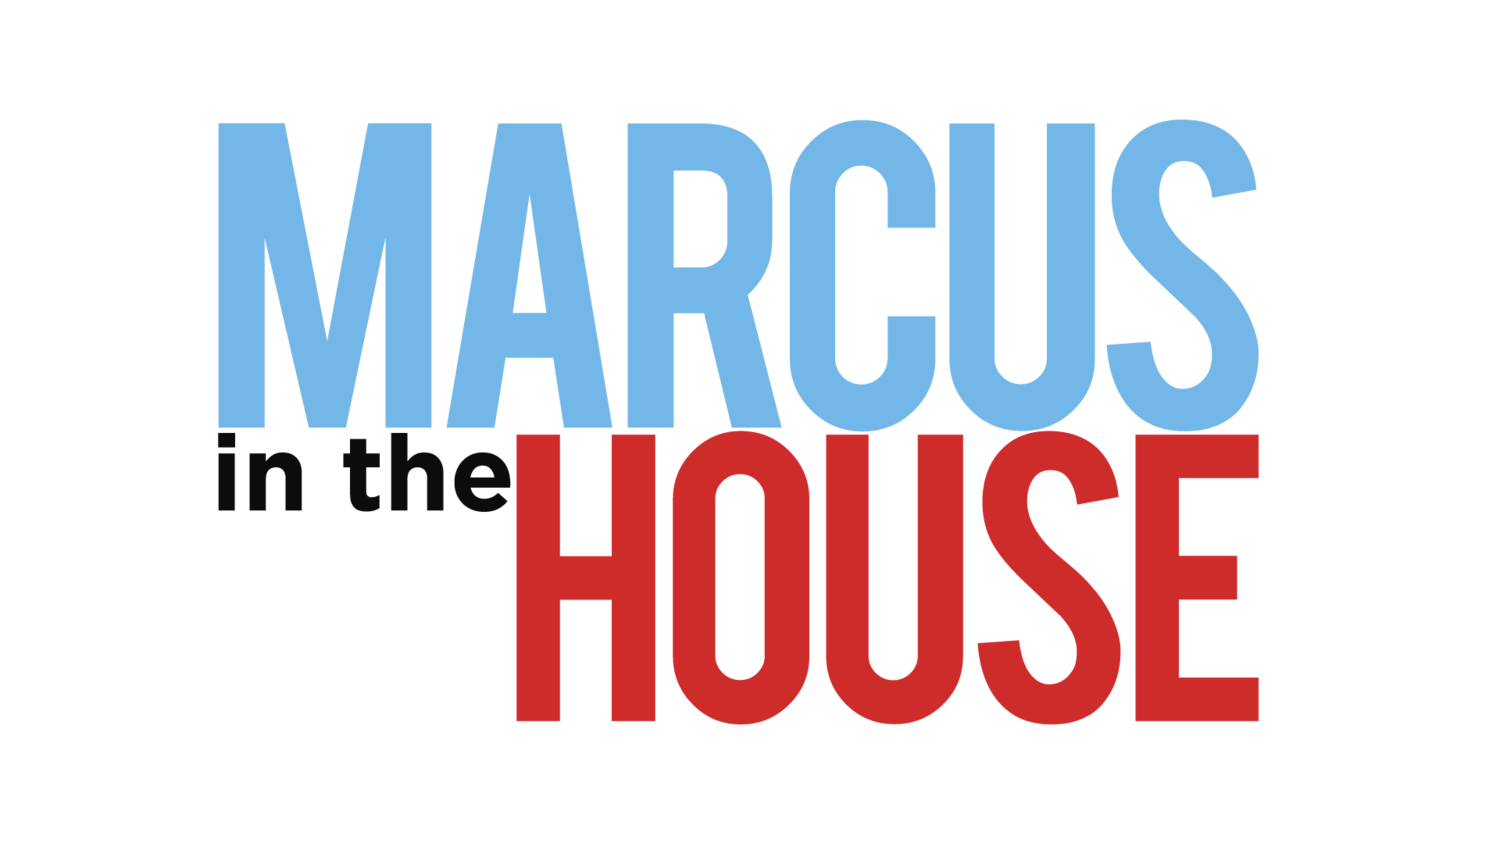 Marcus Sanders for State House